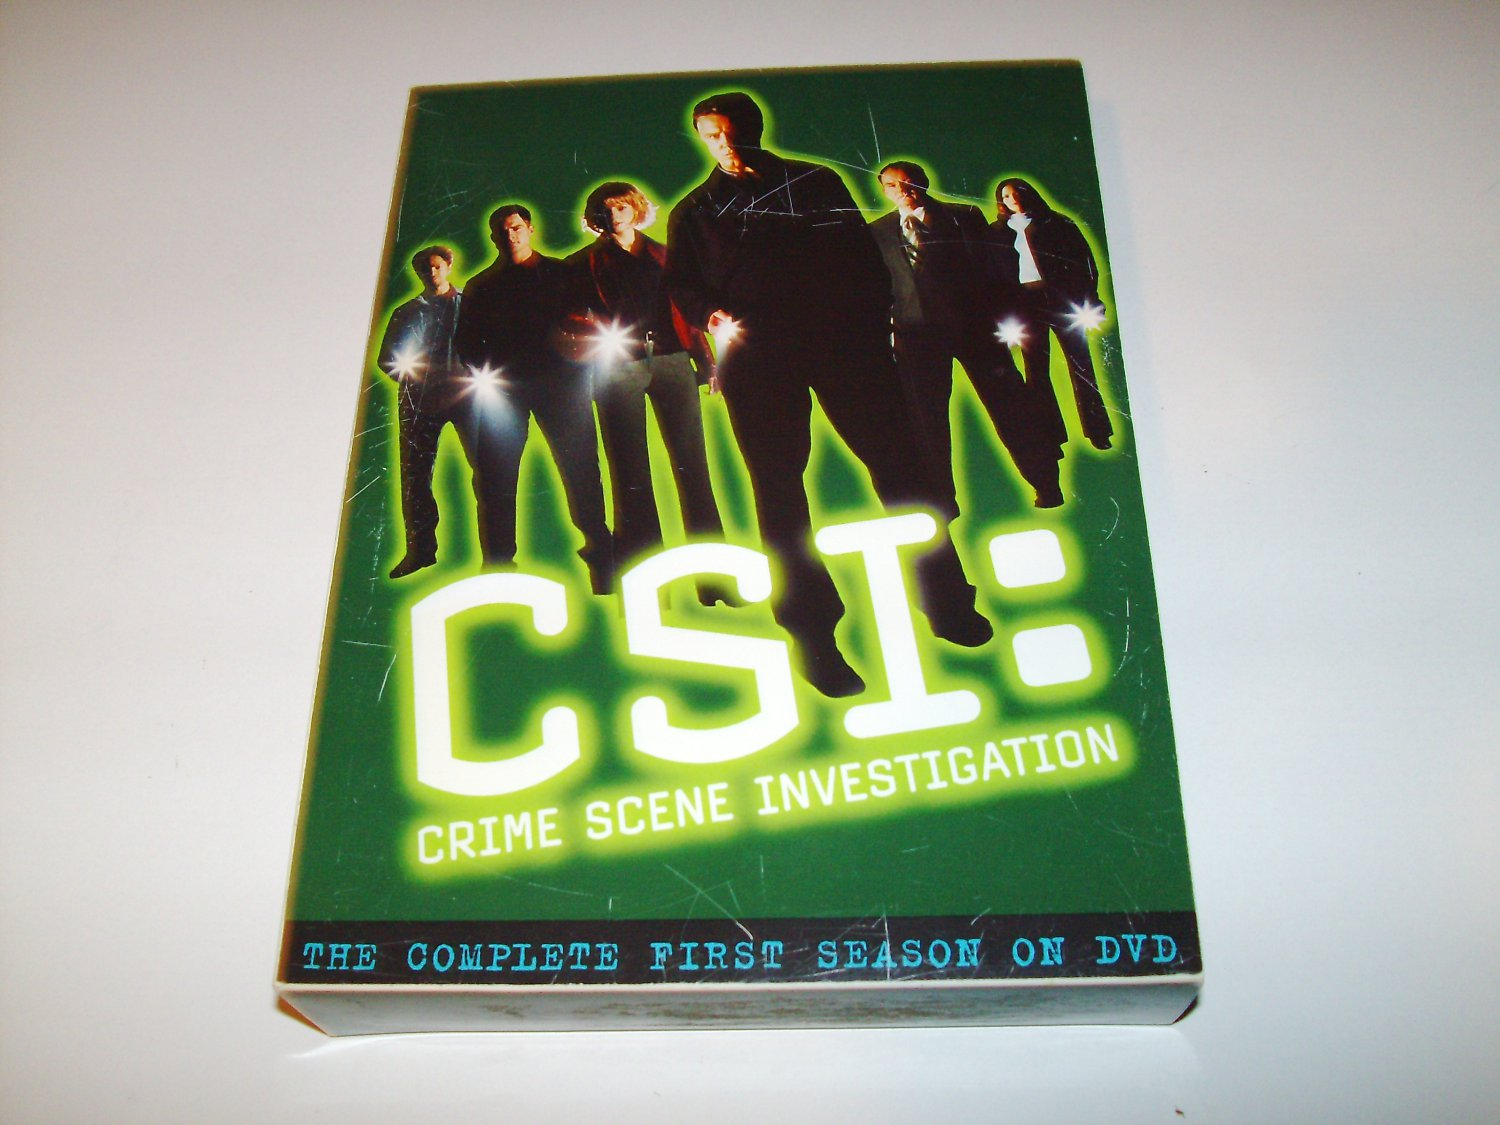 CSI - Complete First Season (87165) [ DVD Box Set ] - Crime Scene Investigation